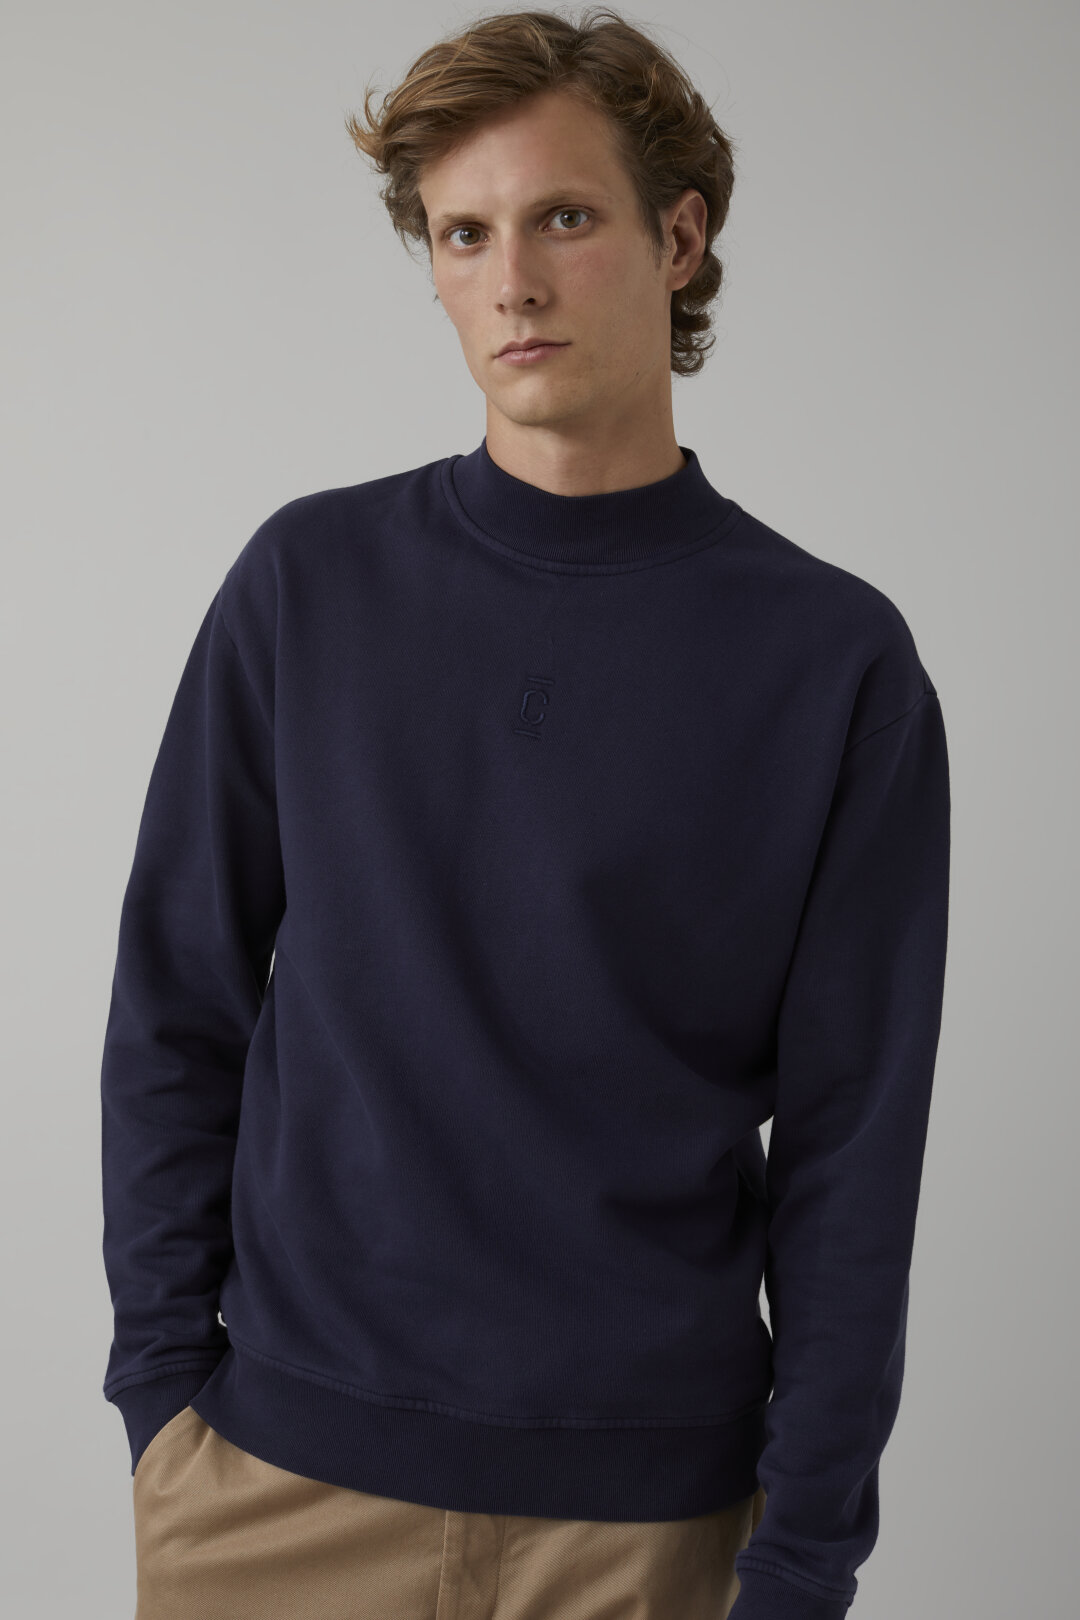 Sweatshirt with Stand-Up Collar